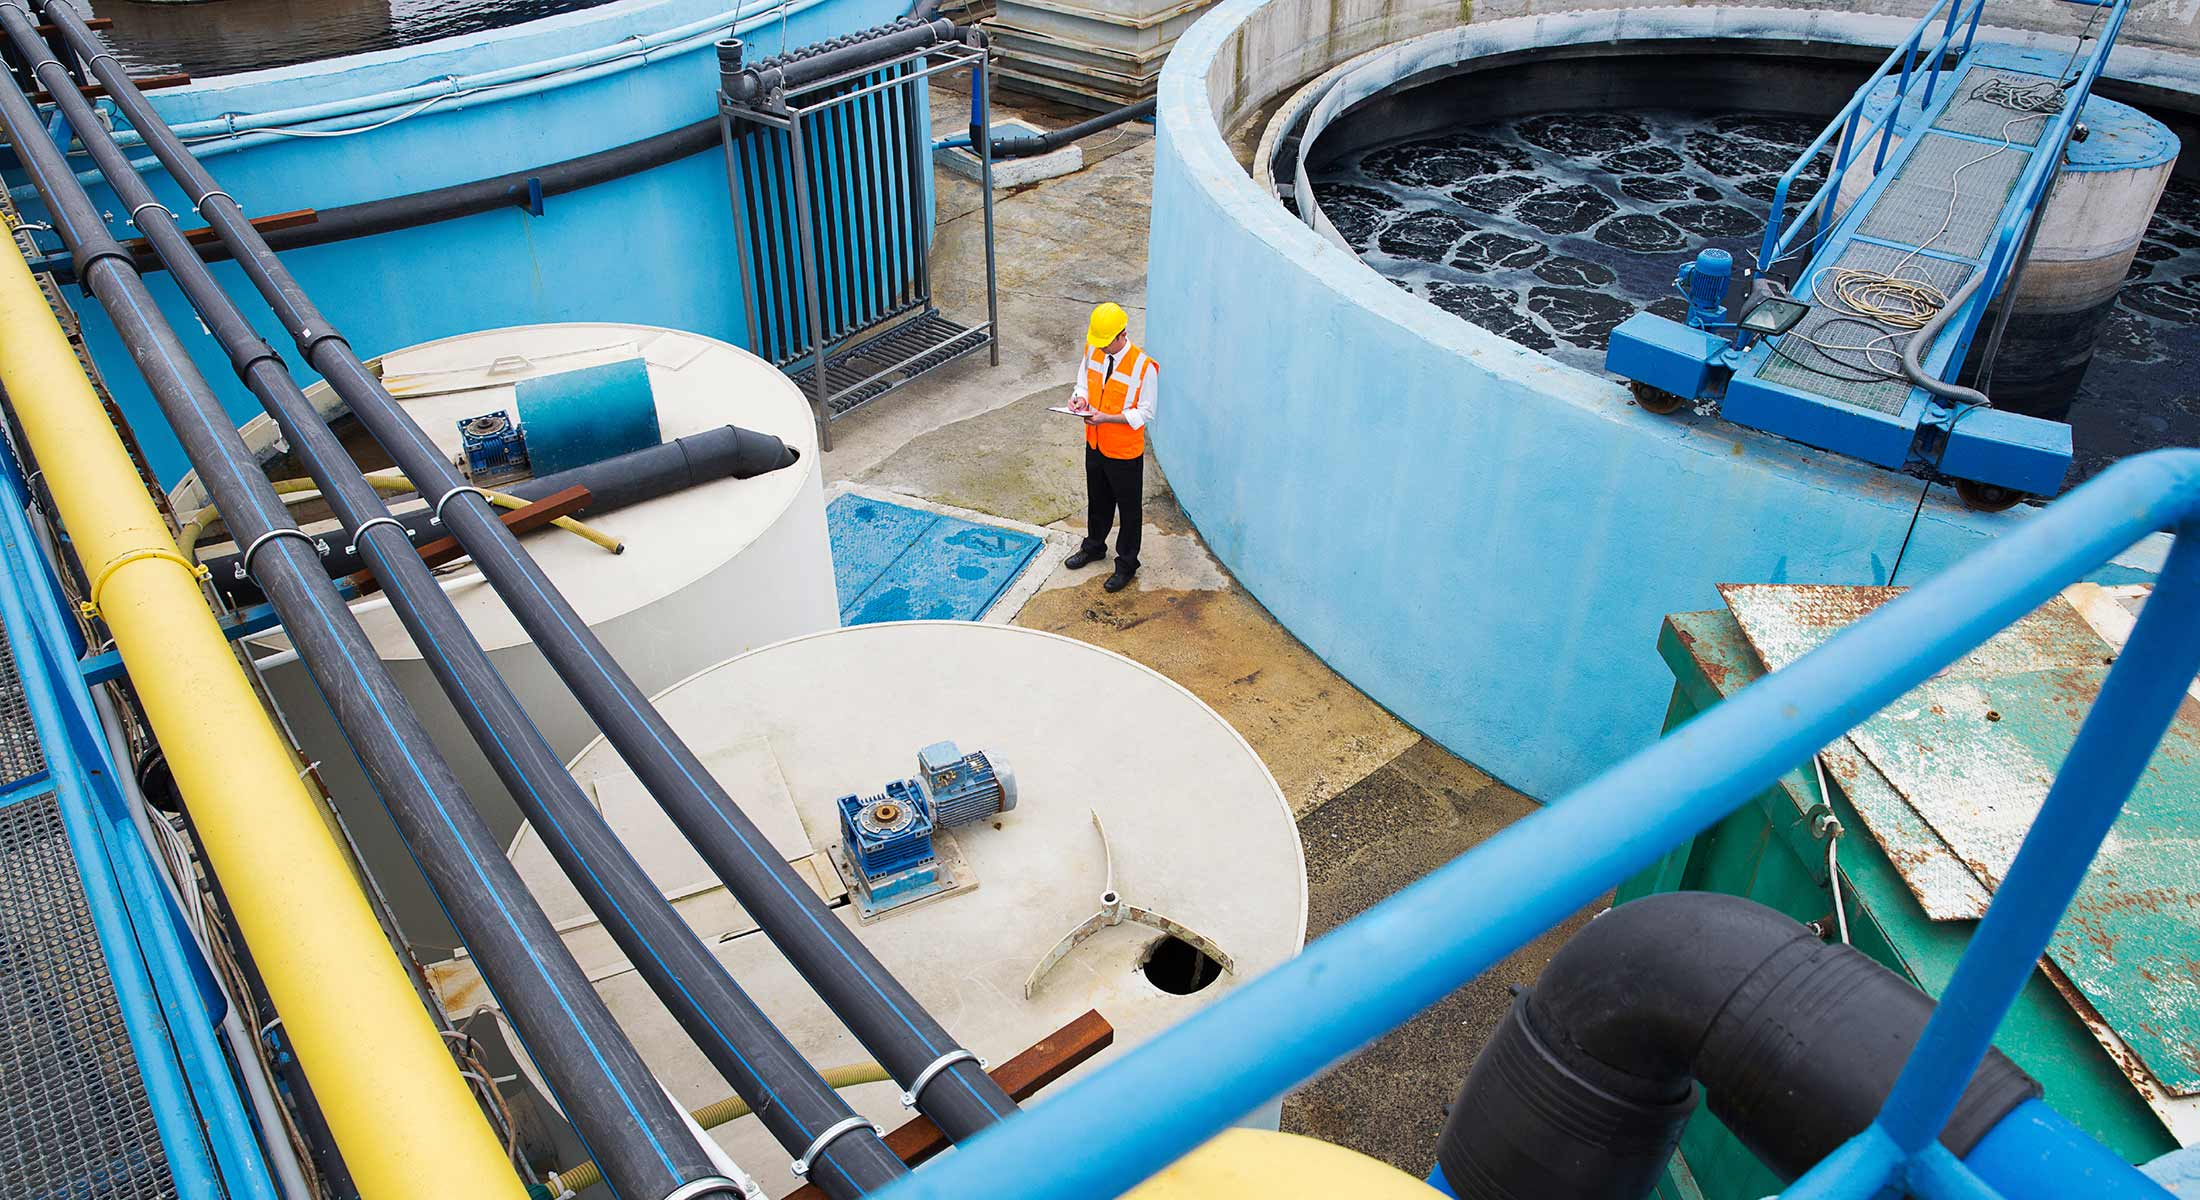 locus_photo_water-utility-inspector-amid-tanks_2200x1200